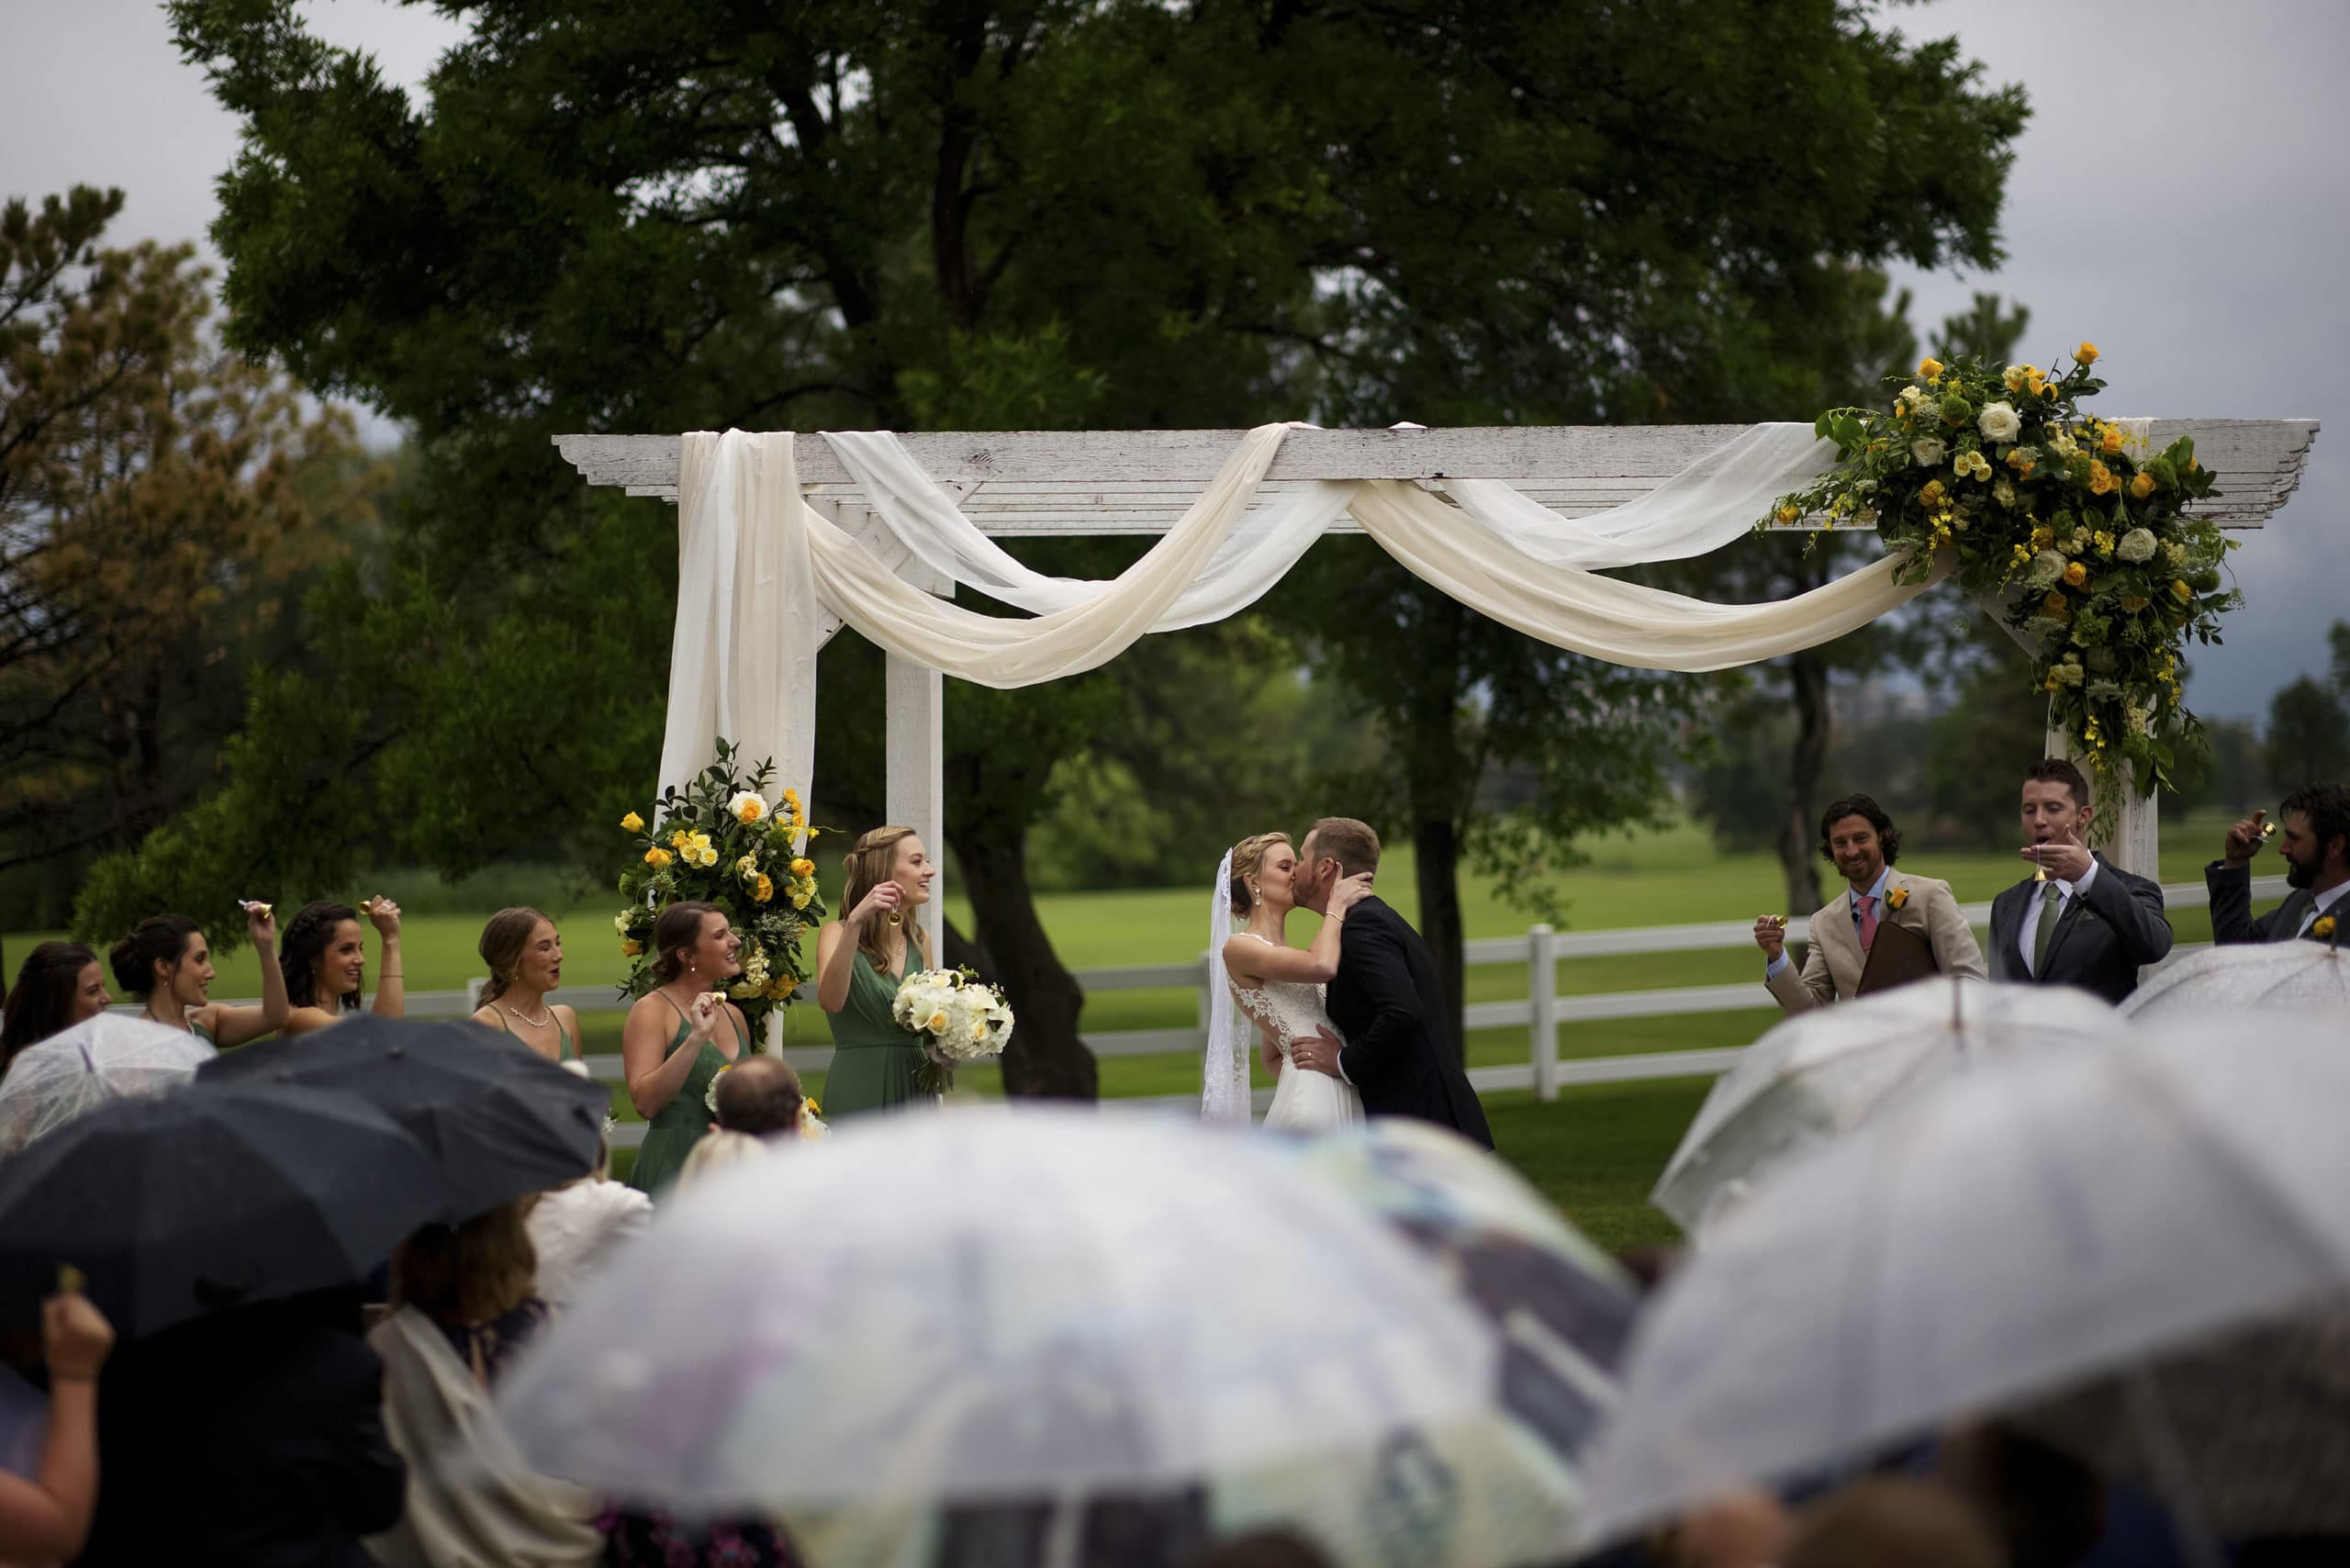 the couple's first kiss during at the end of the wedding ceremony